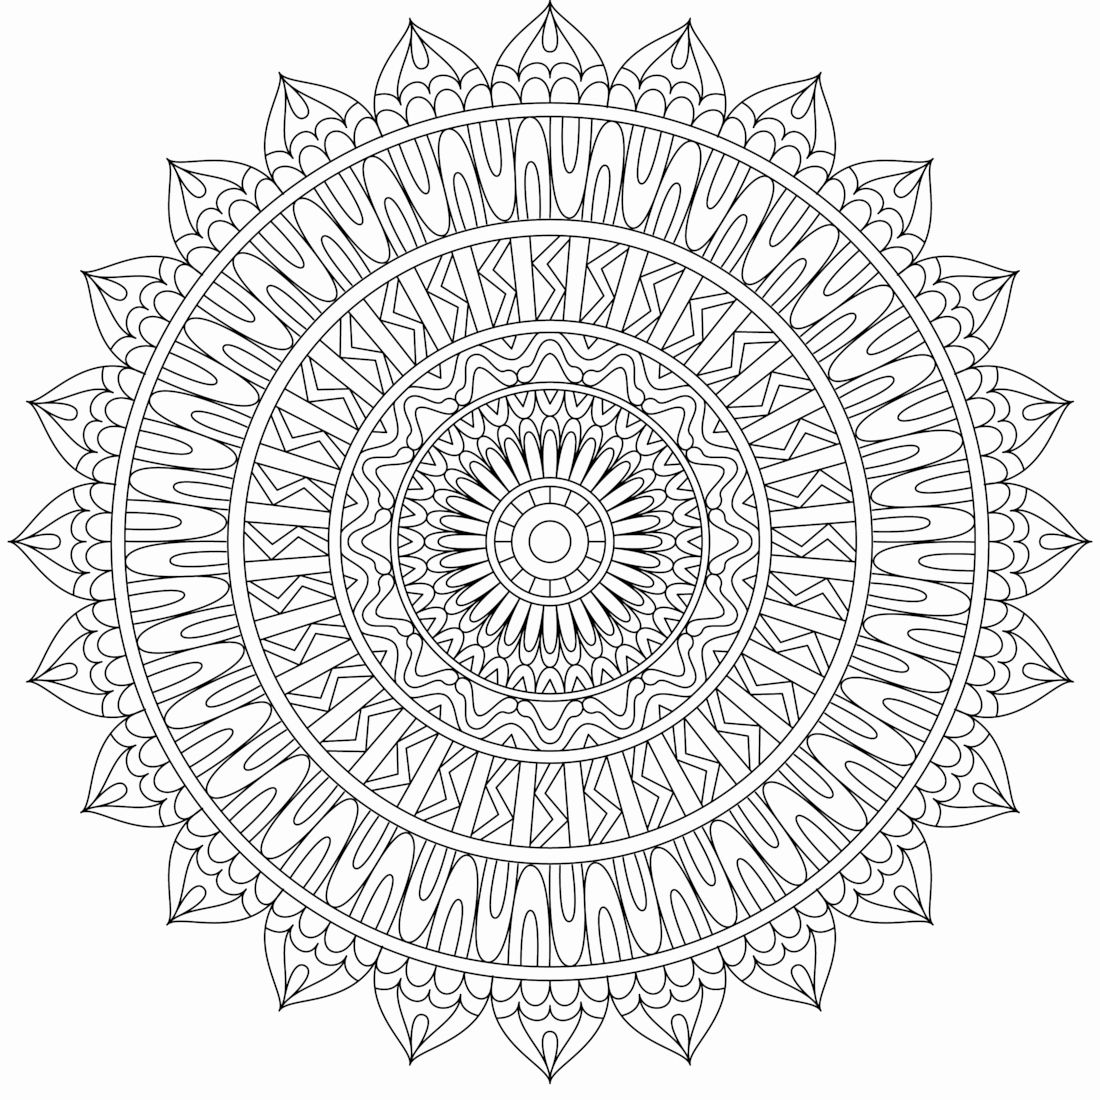 Tattoo Coloring Book Walmart Best Of 231 Best Mandalas Coloring Pages Images In 2019 Mandala Coloring Pages Pattern Coloring Pages Tattoo Coloring Book